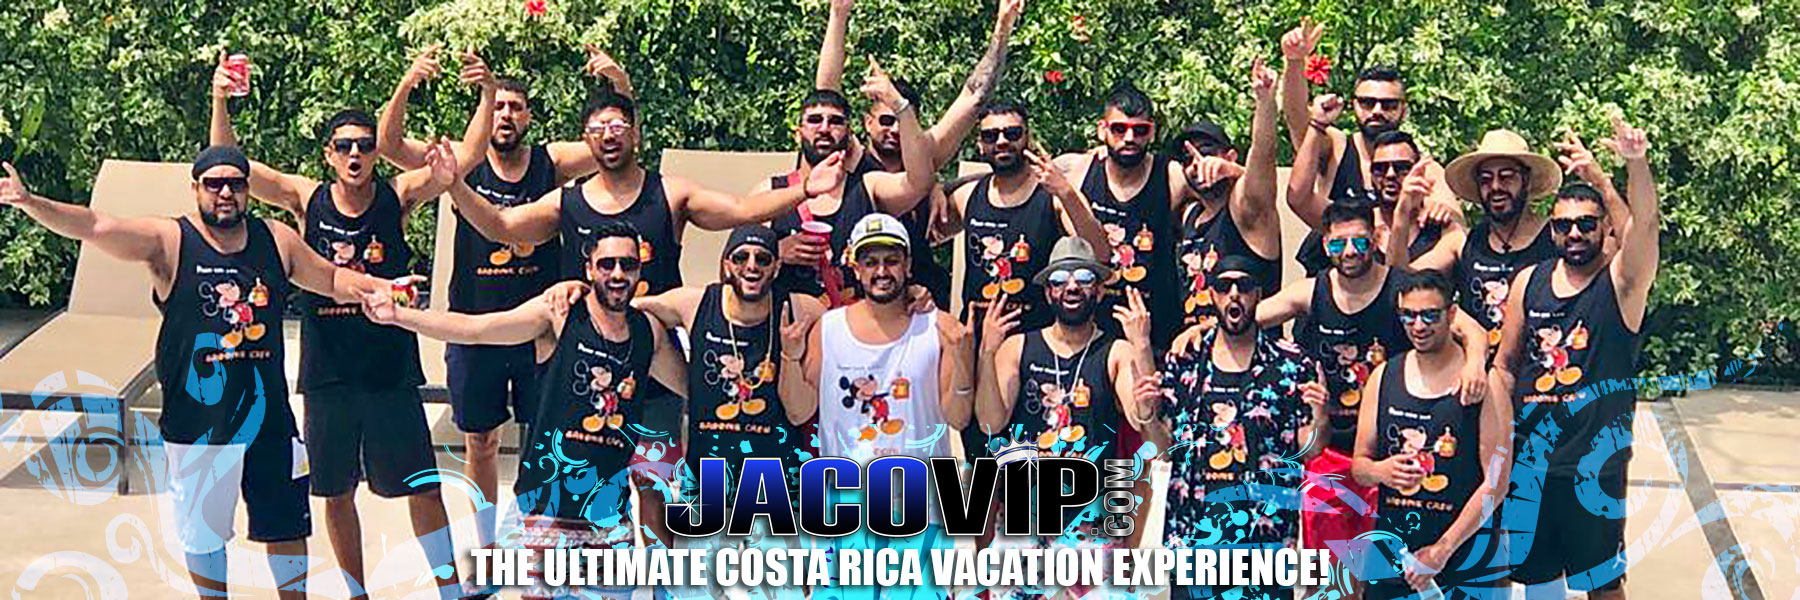 Costa Rica bachelor party group at Rancho De Suenos luxury vacation rental house